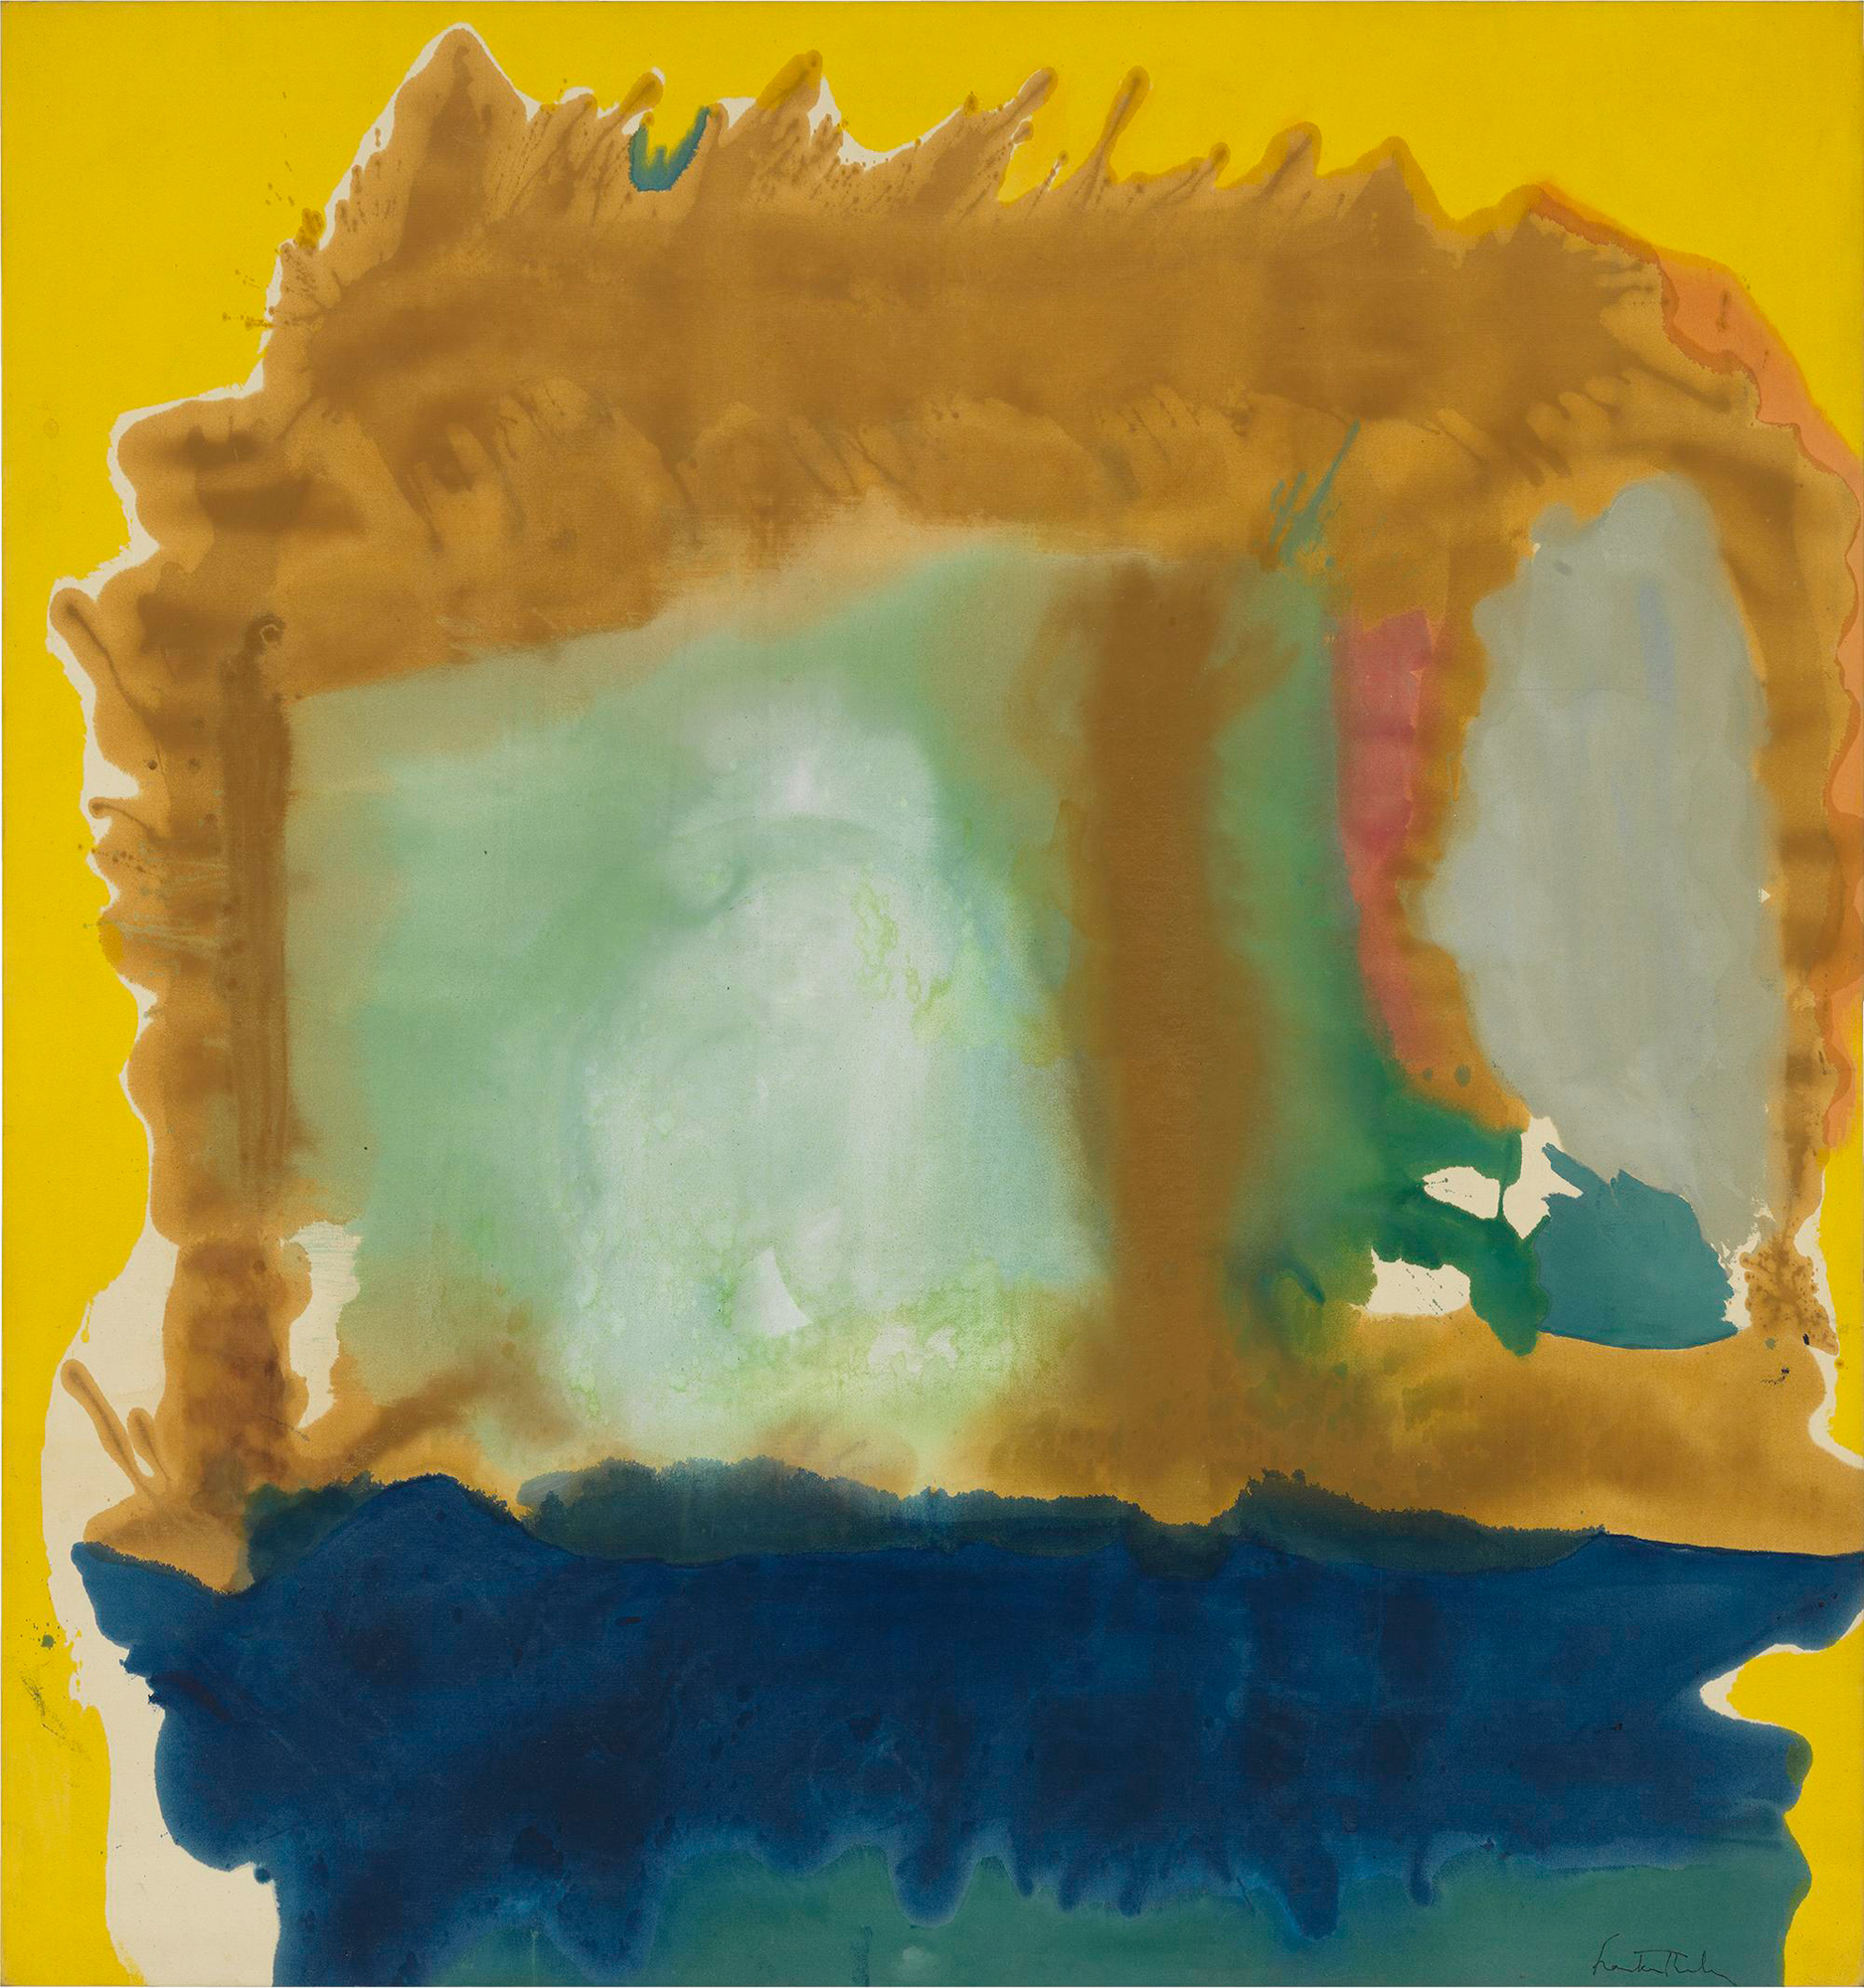 helen frankenthaler - milkwood arcade 1963-newsletter art comes to you 10